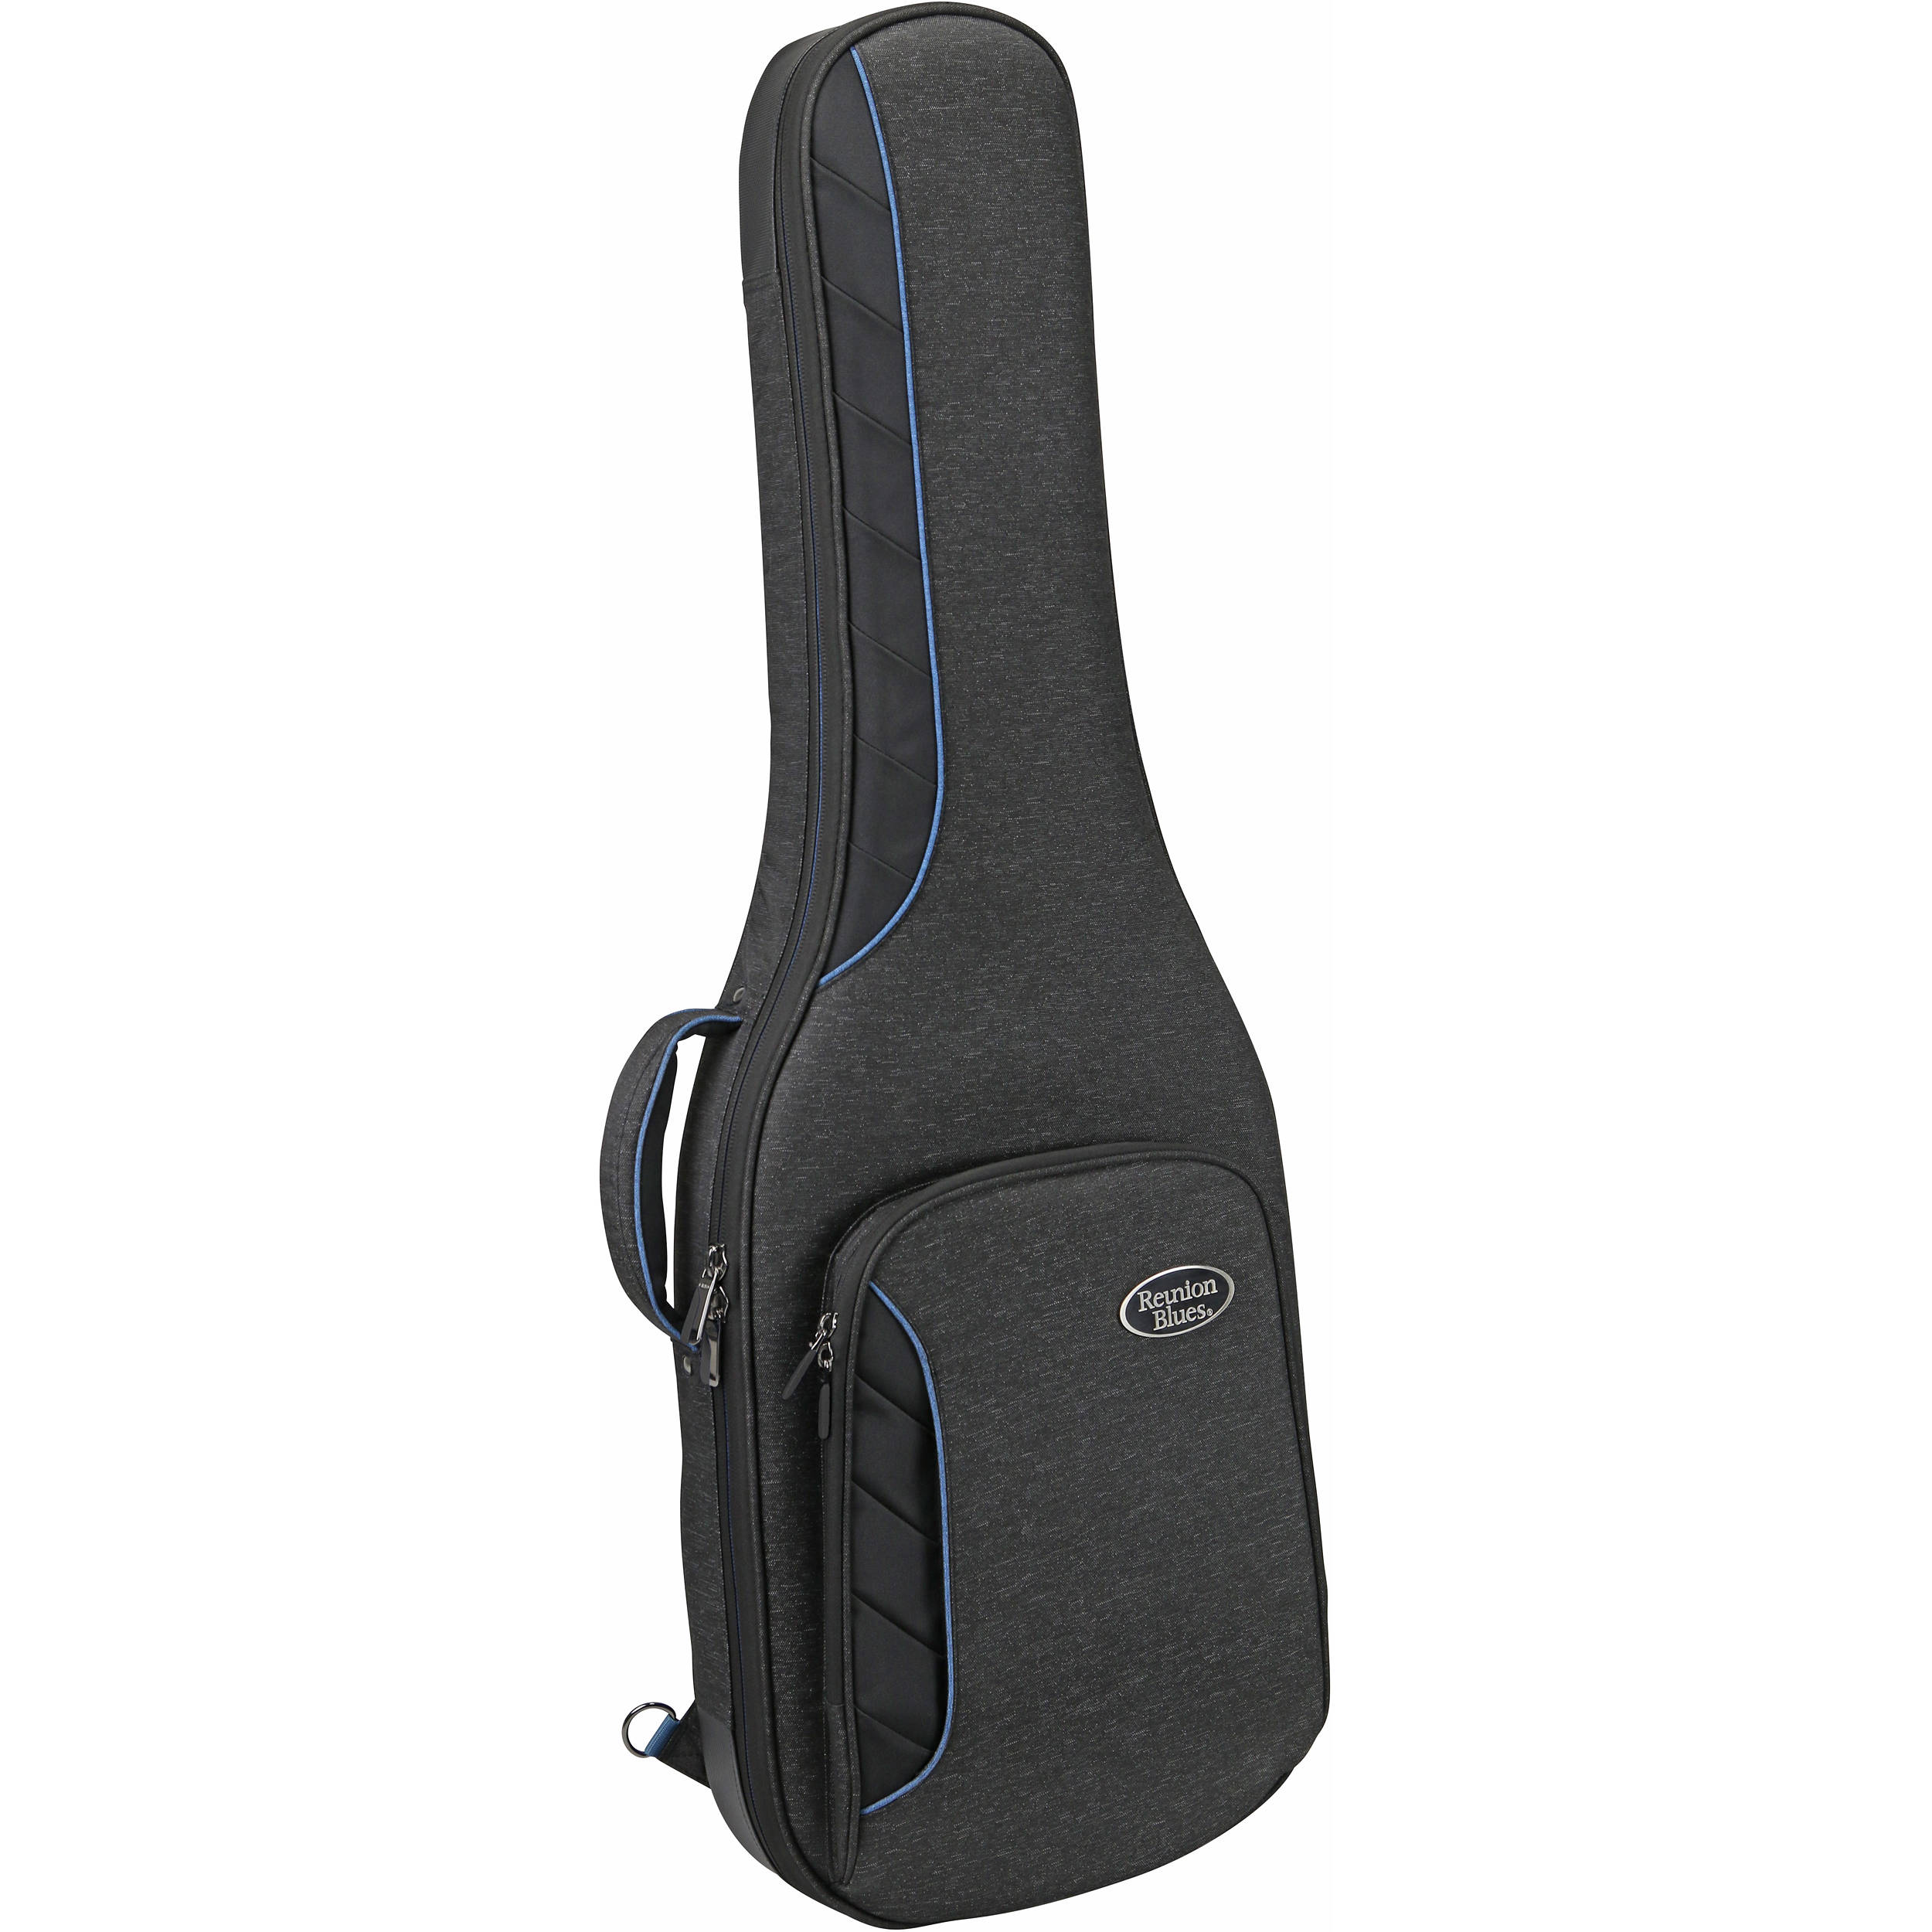 Reunion Blues Rb Continental Voyager Electric Guitar Case